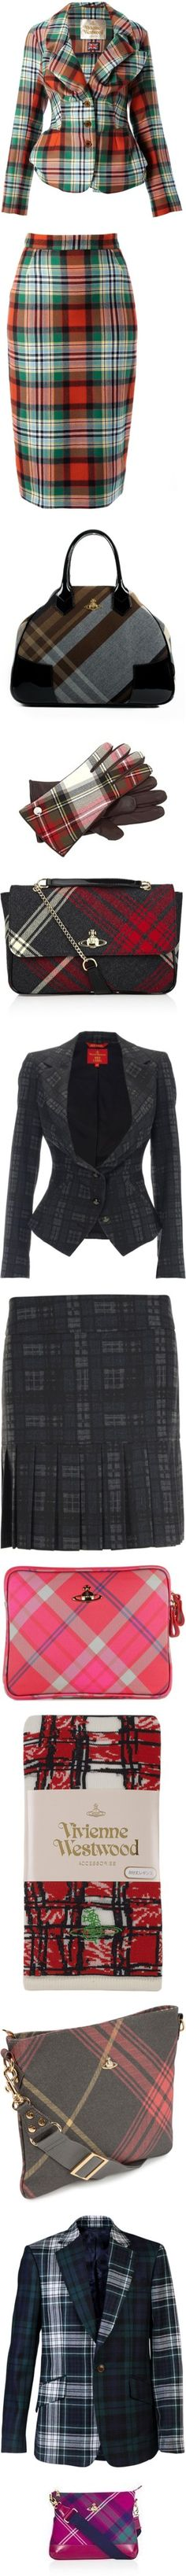 """Vivienne Westwood Tartan"" by kittyfantastica ❤ liked on Polyvore"